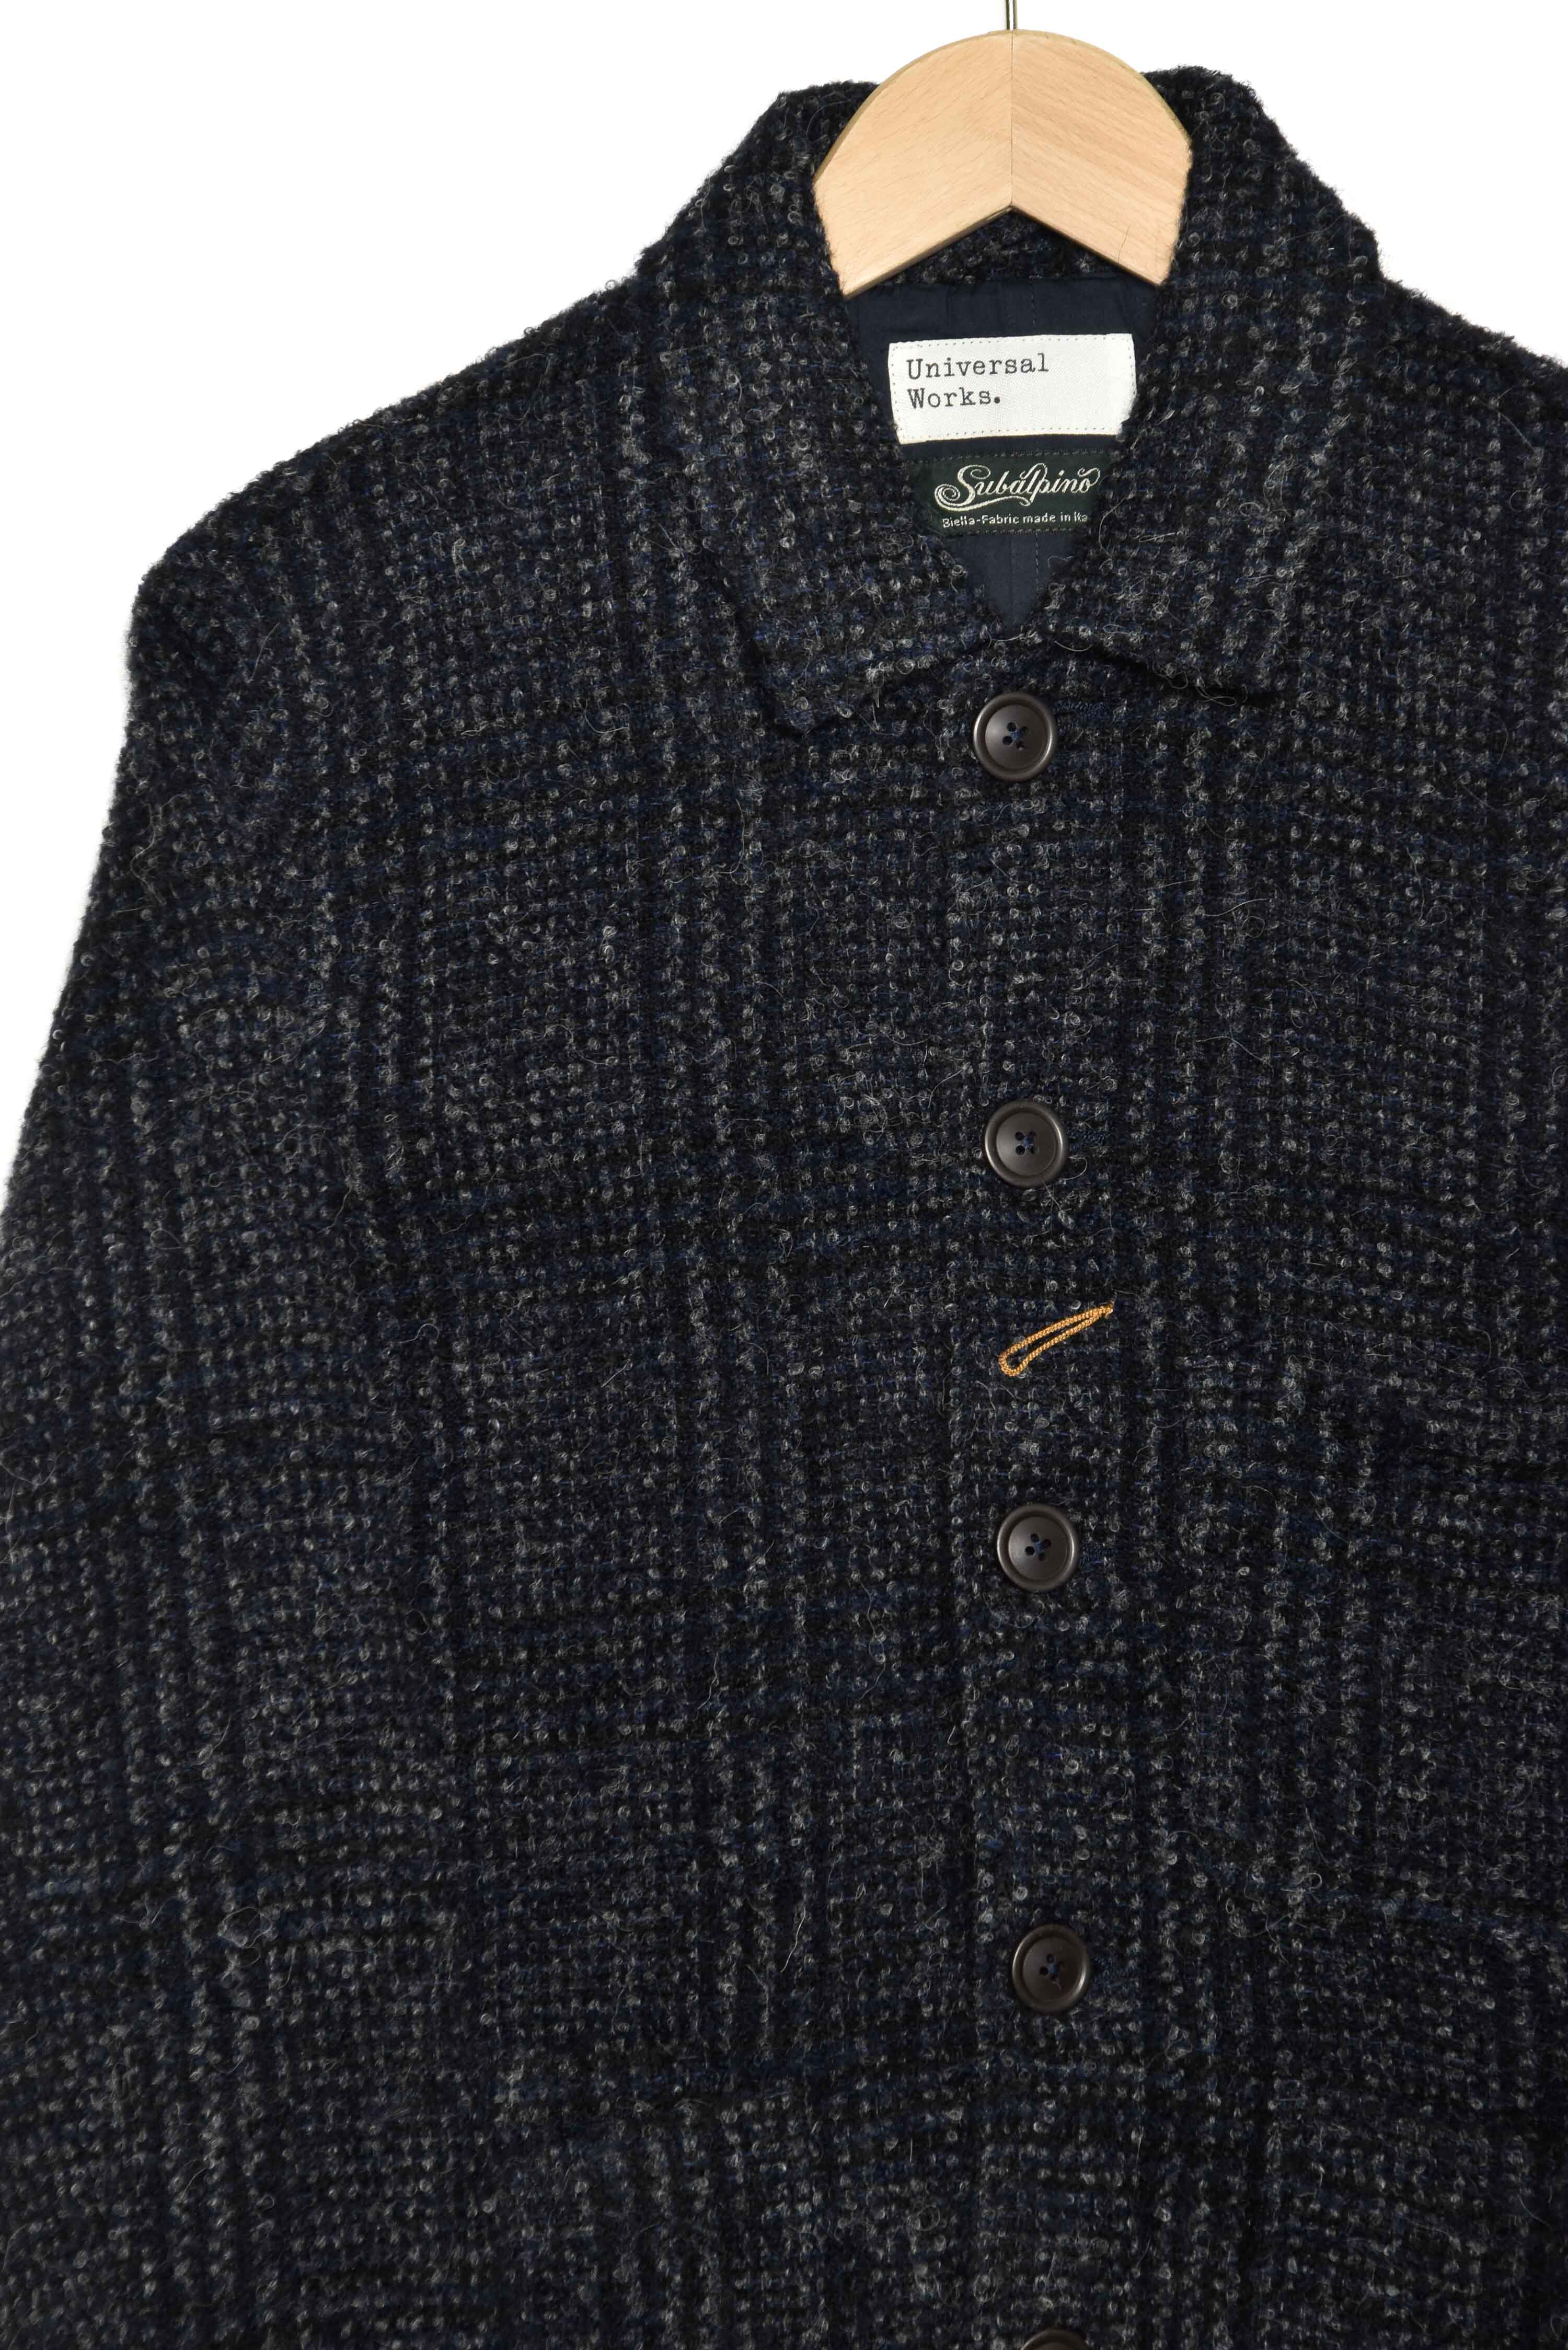 Universal Works Bakers Jacket 21154 alpino pow plaid navy